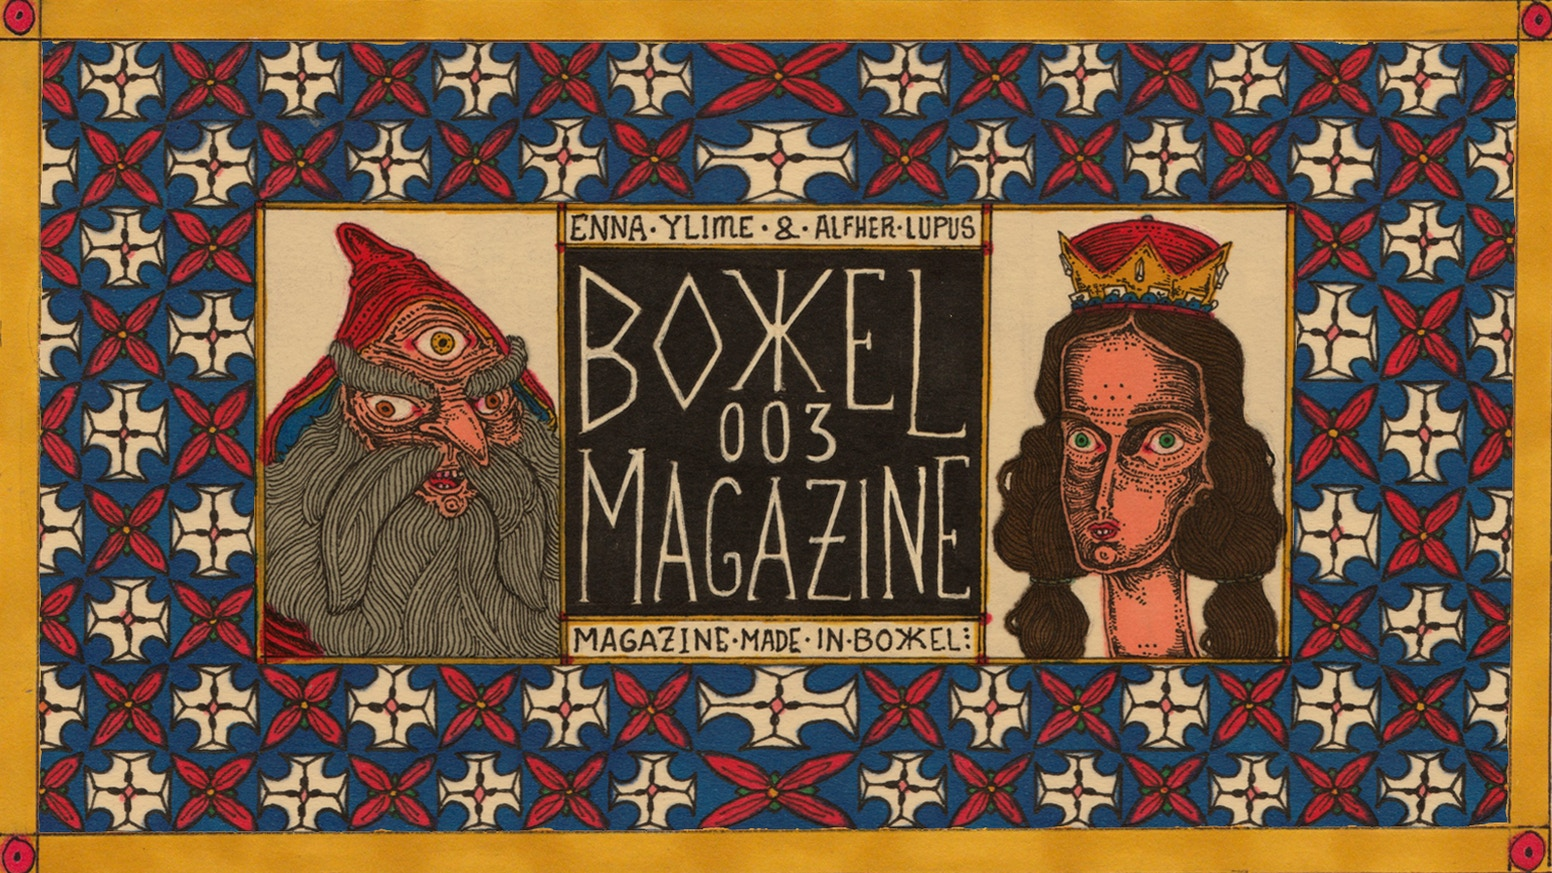 Bokkel magazine 003 brimming with riddles, short stories with a few twists and mental games all fully illustrated. #make100 campaign